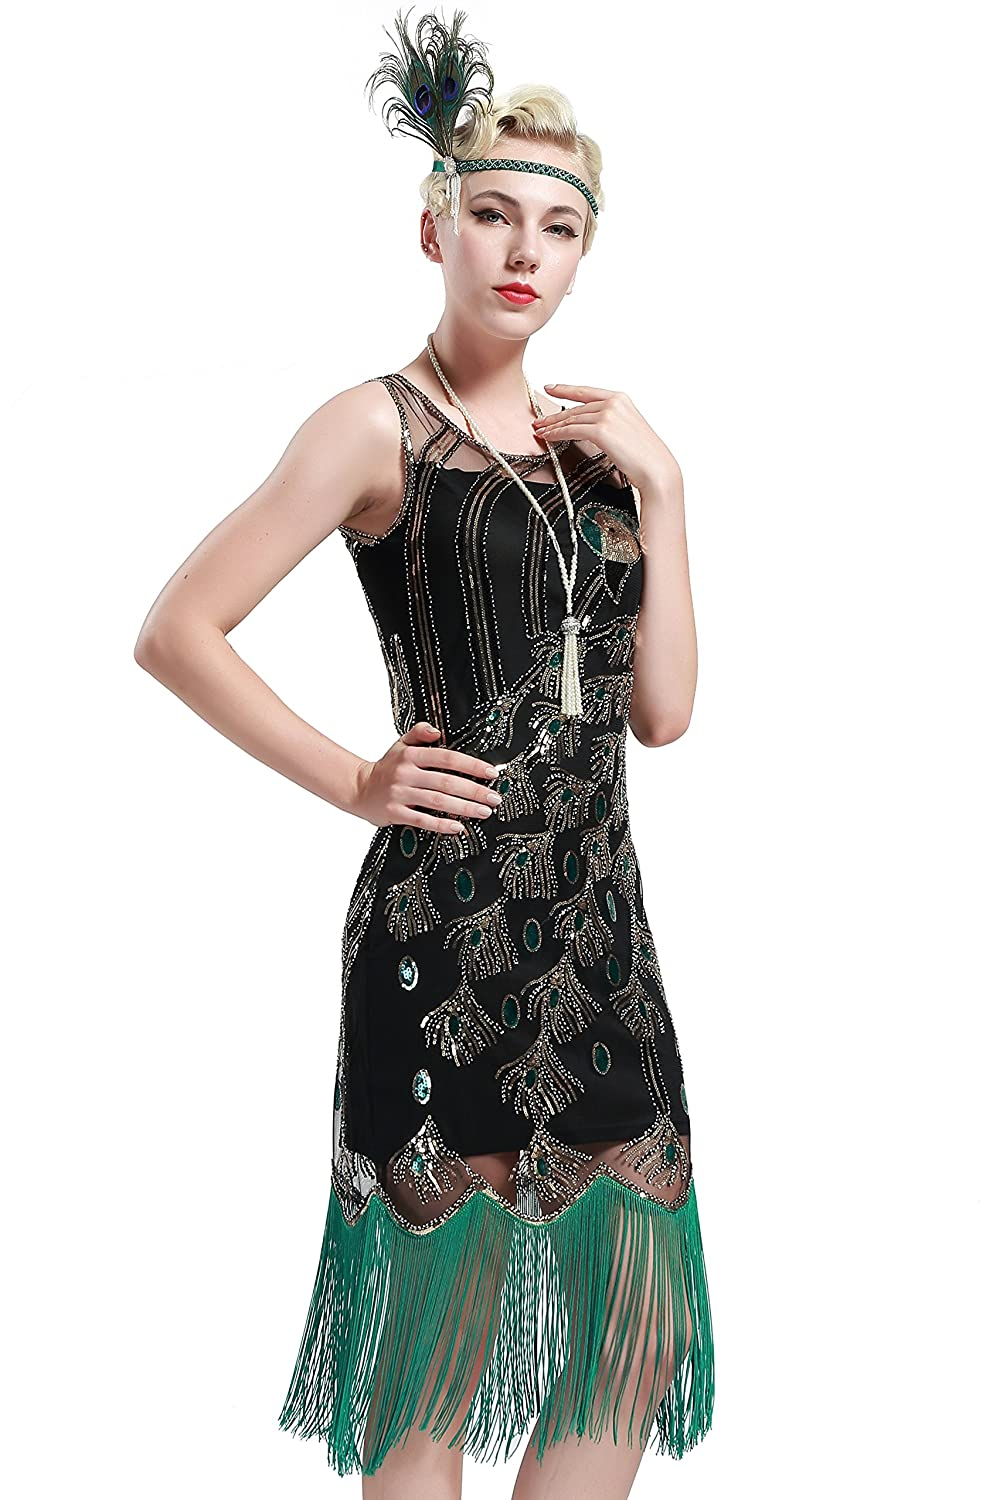 1920s Costumes: Flapper, Great Gatsby, Gangster Girl BABEYOND 20s Vintage Peacock Sequin Fringed Party Flapper Dress $38.99 AT vintagedancer.com